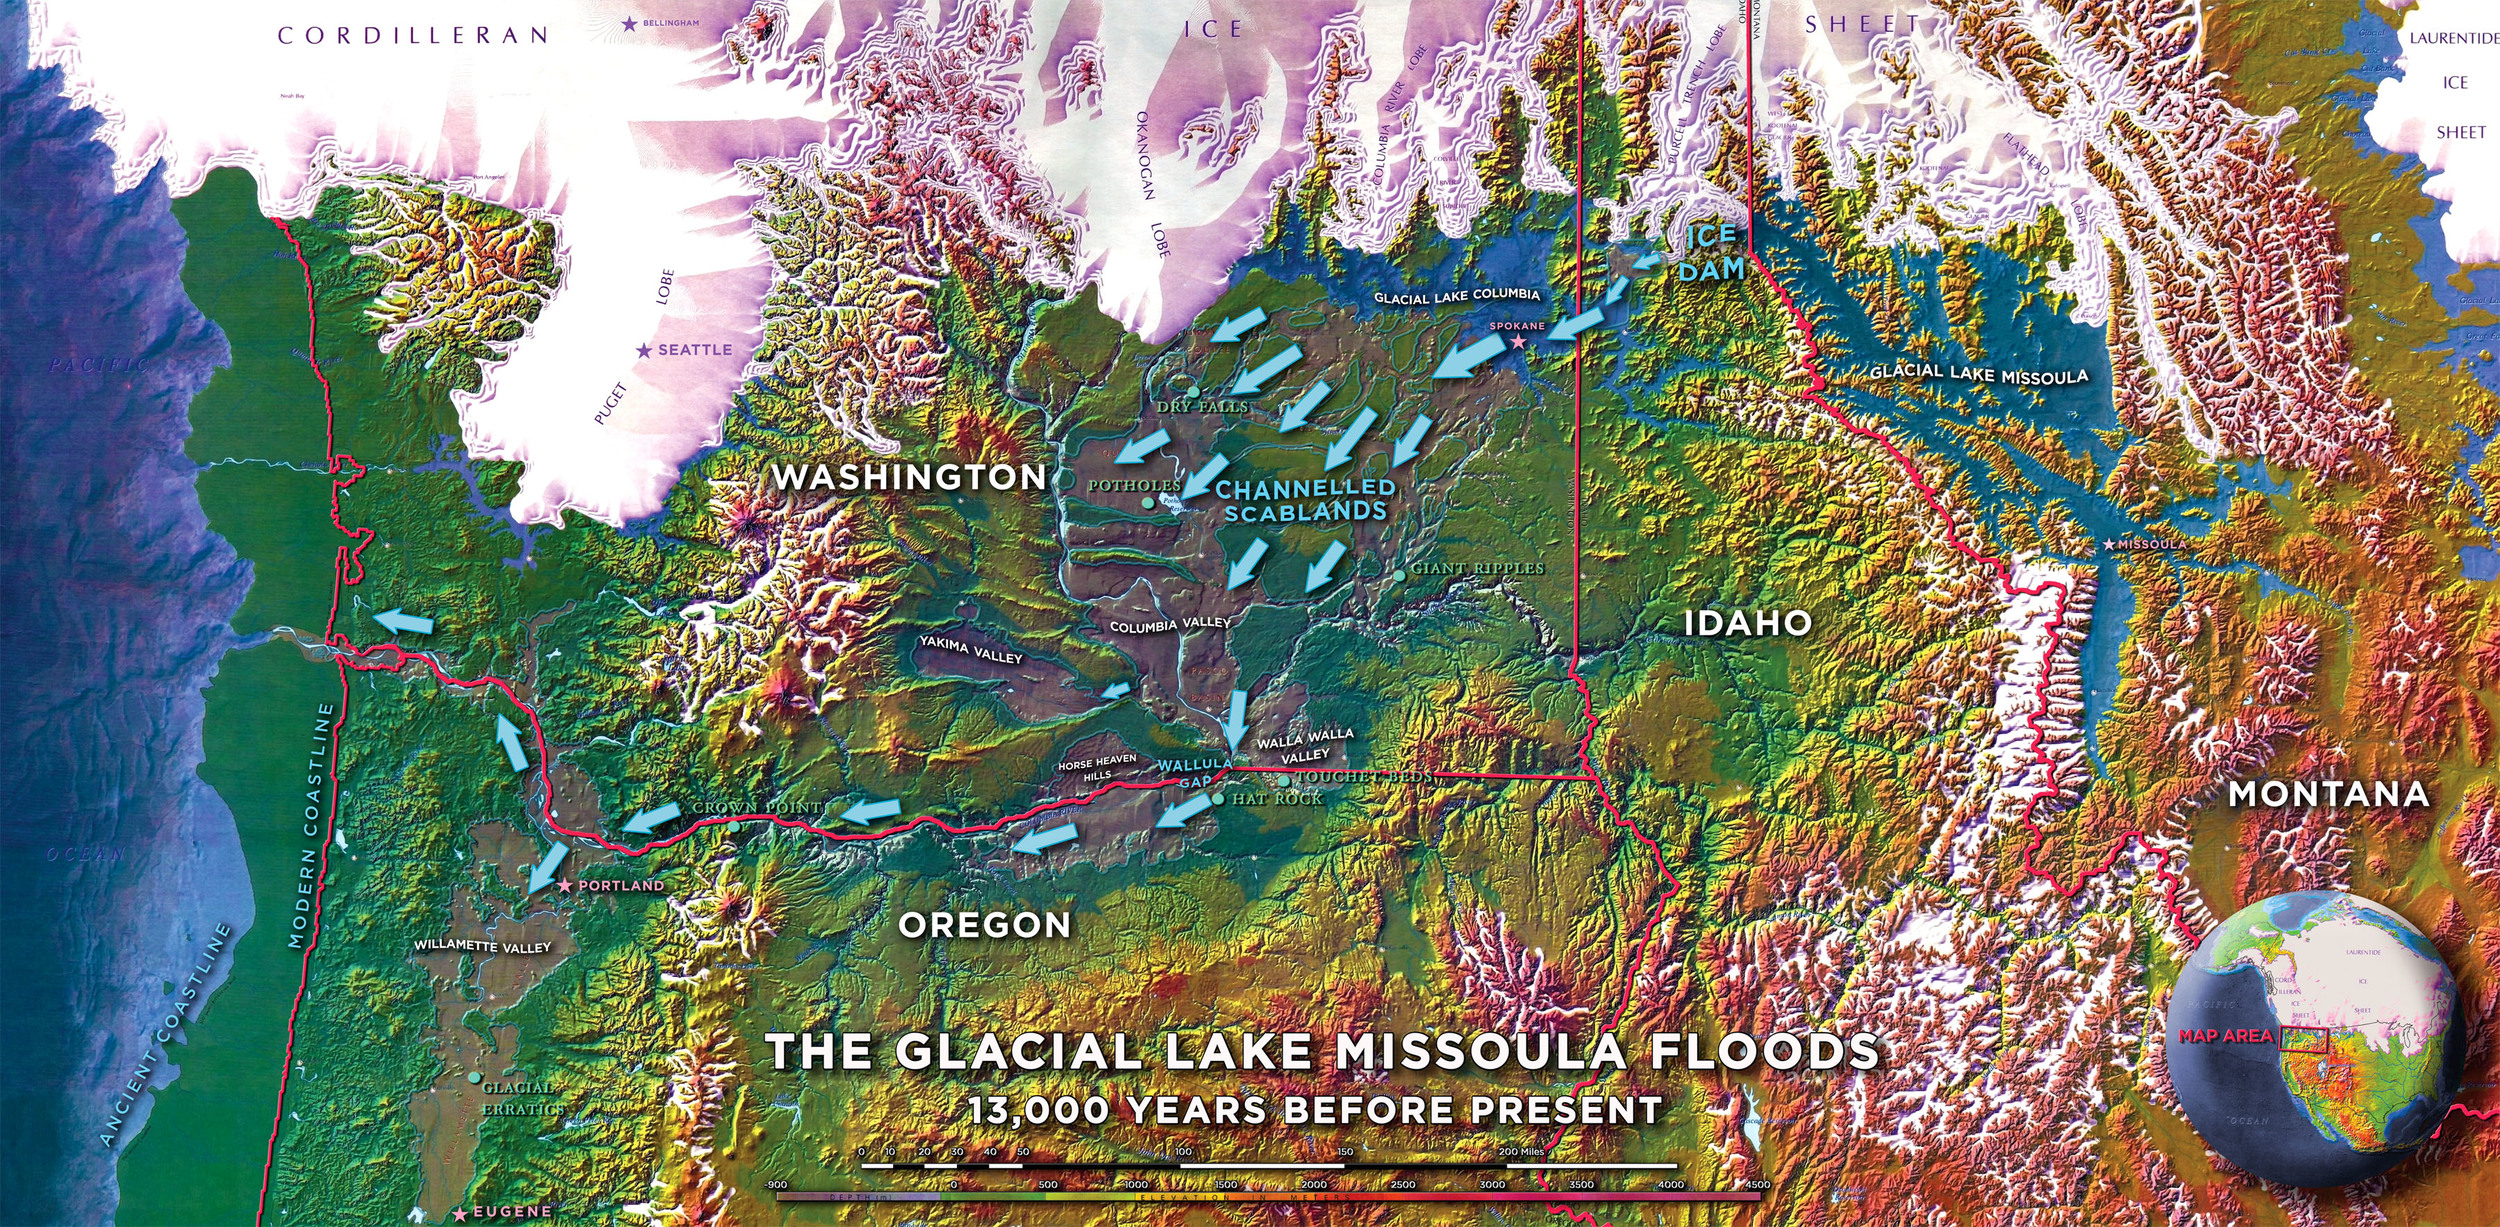 A complete map of the floods, based on a USGS map.